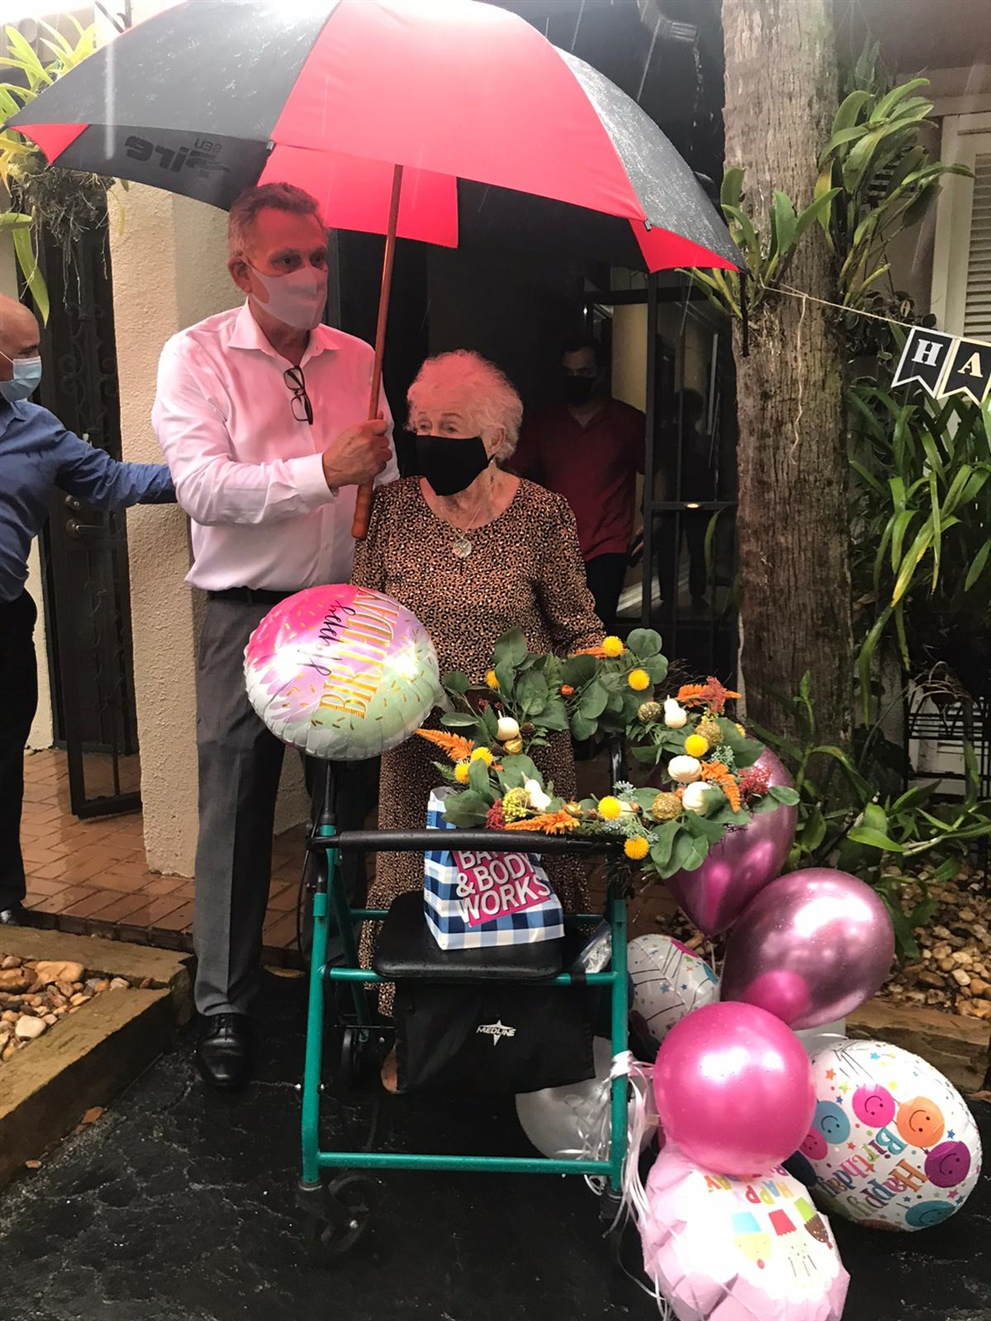 Alex Ruiz of The Keyes Company holds an umbrella over Rosa Nell Hammer on Oct. 2 during her surprise 101st birthday party in Miami Lakes. Daniel Gandule is at left, and Allan Pelaez is in the background; they're both friends from the real estate indu